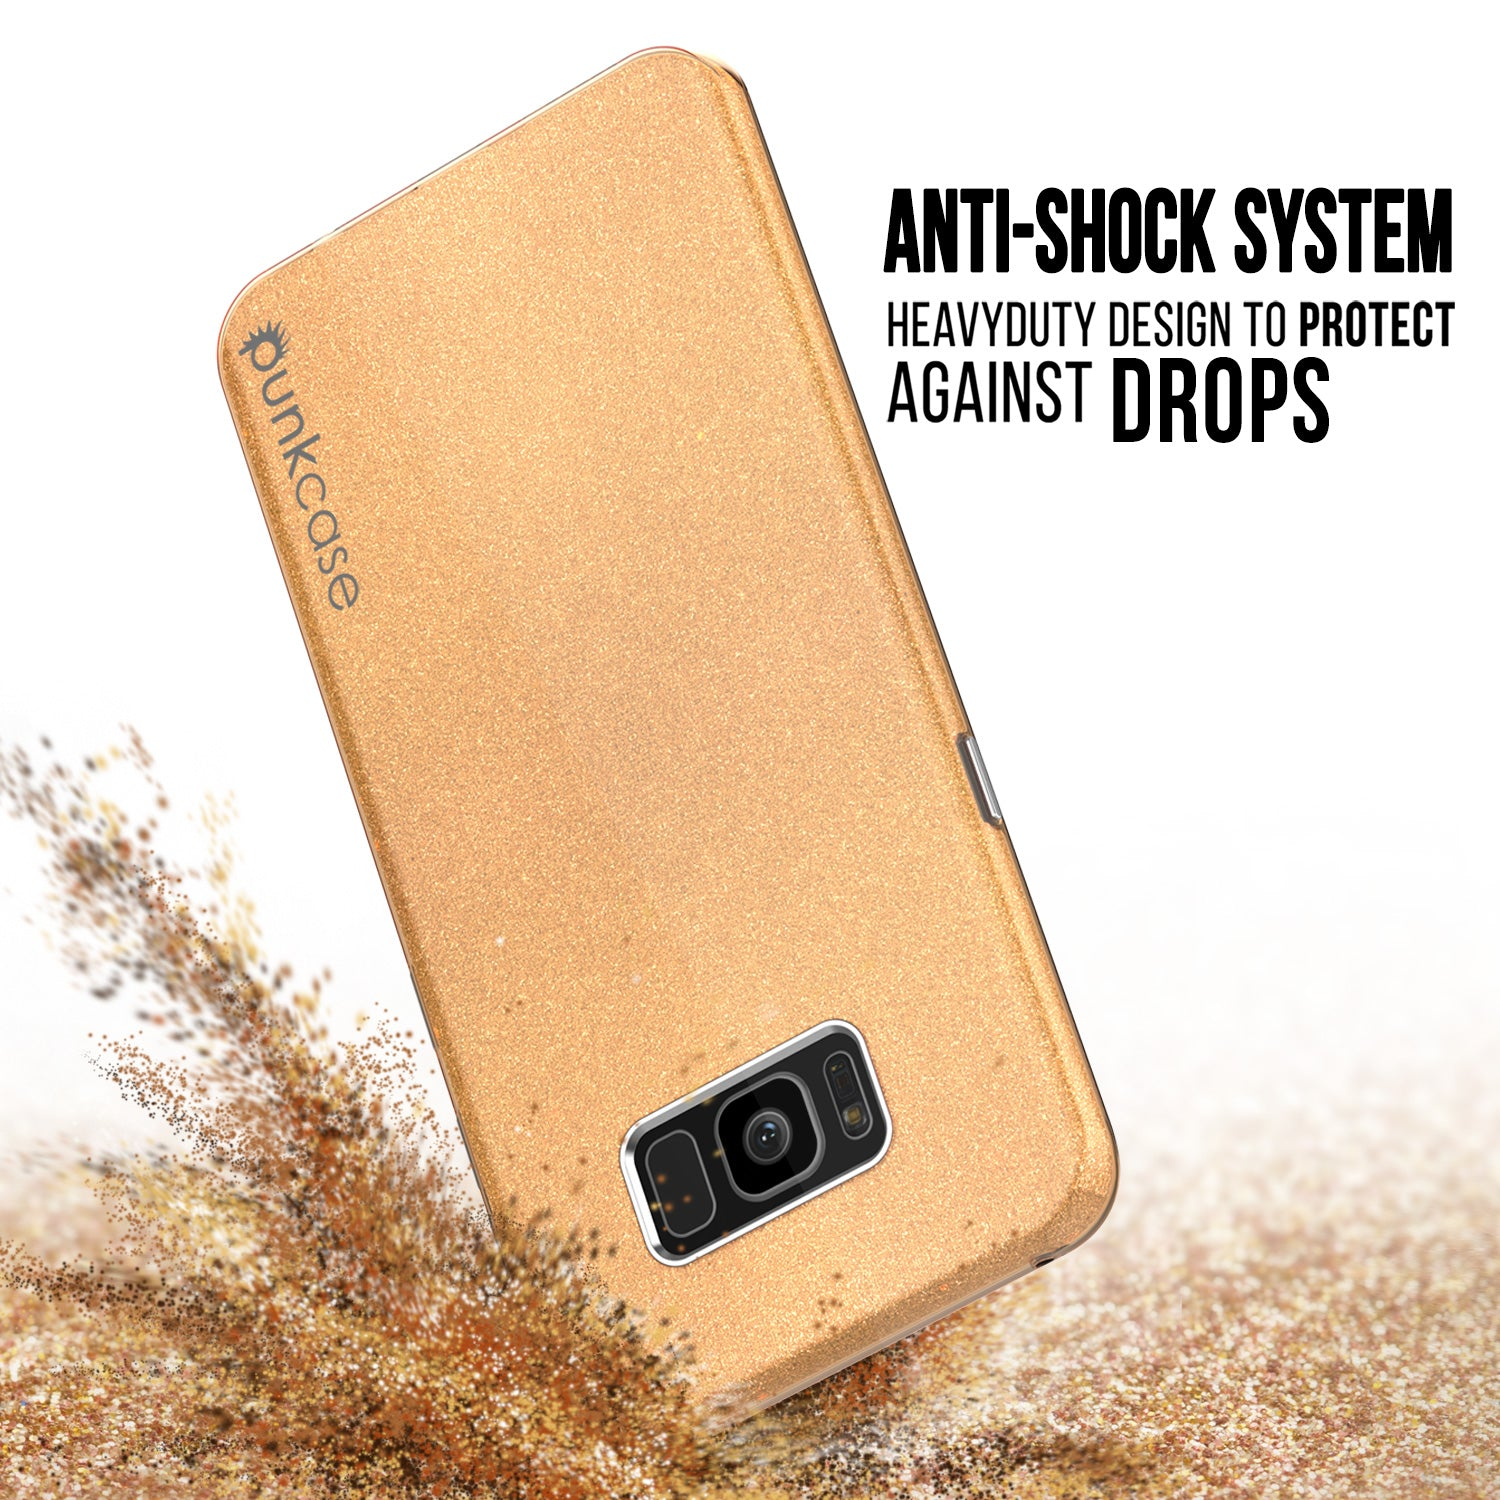 Galaxy S8 Plus Case, Punkcase Galactic 2.0 Series Ultra Slim Protective Armor TPU Cover [Gold]